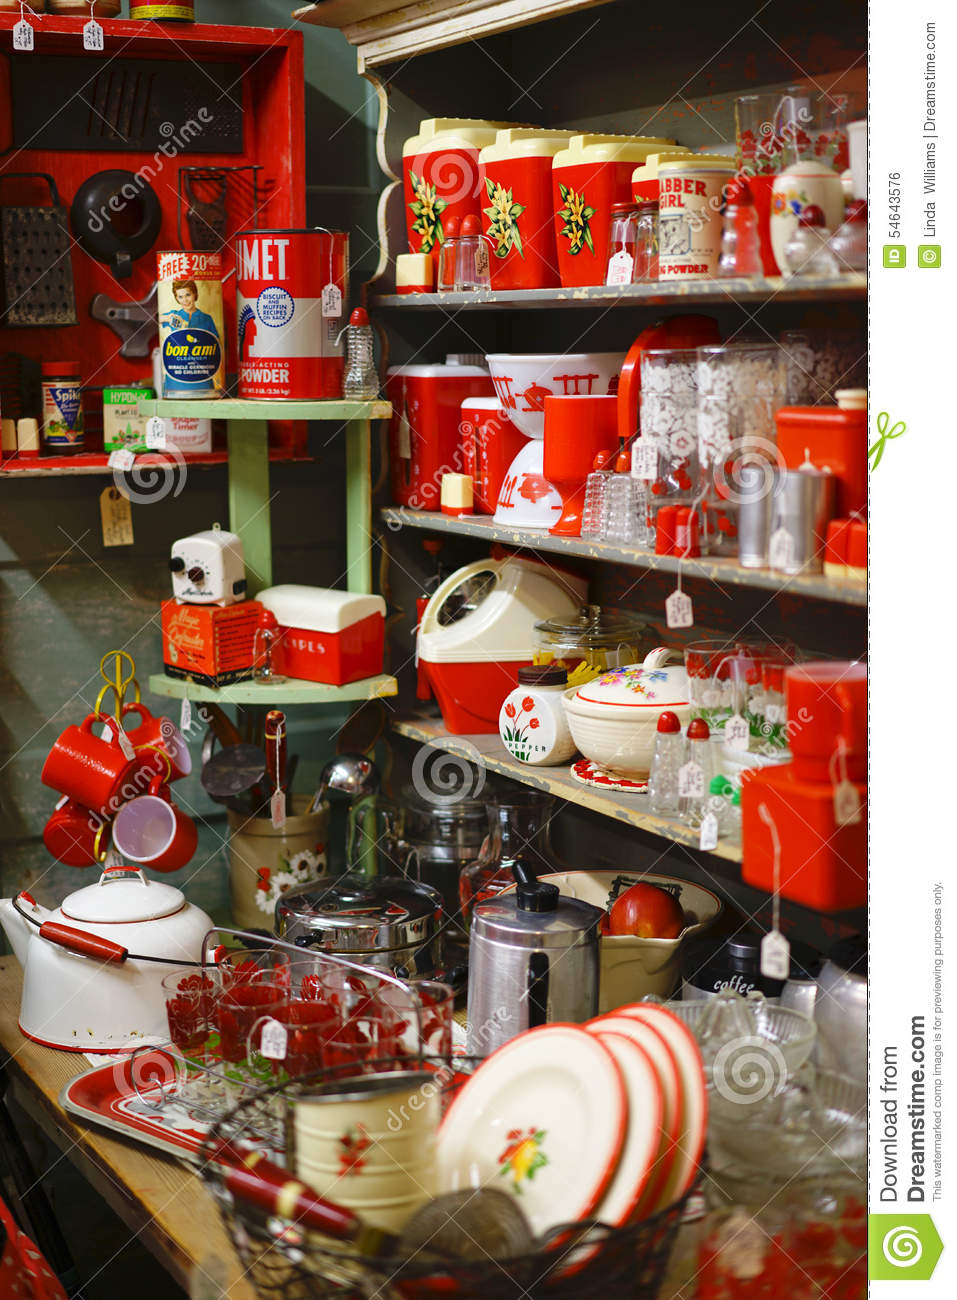 Download Vintage Bakelite Kitchenware Editorial Photo   Image Of Cups,  Canisters: 54643576